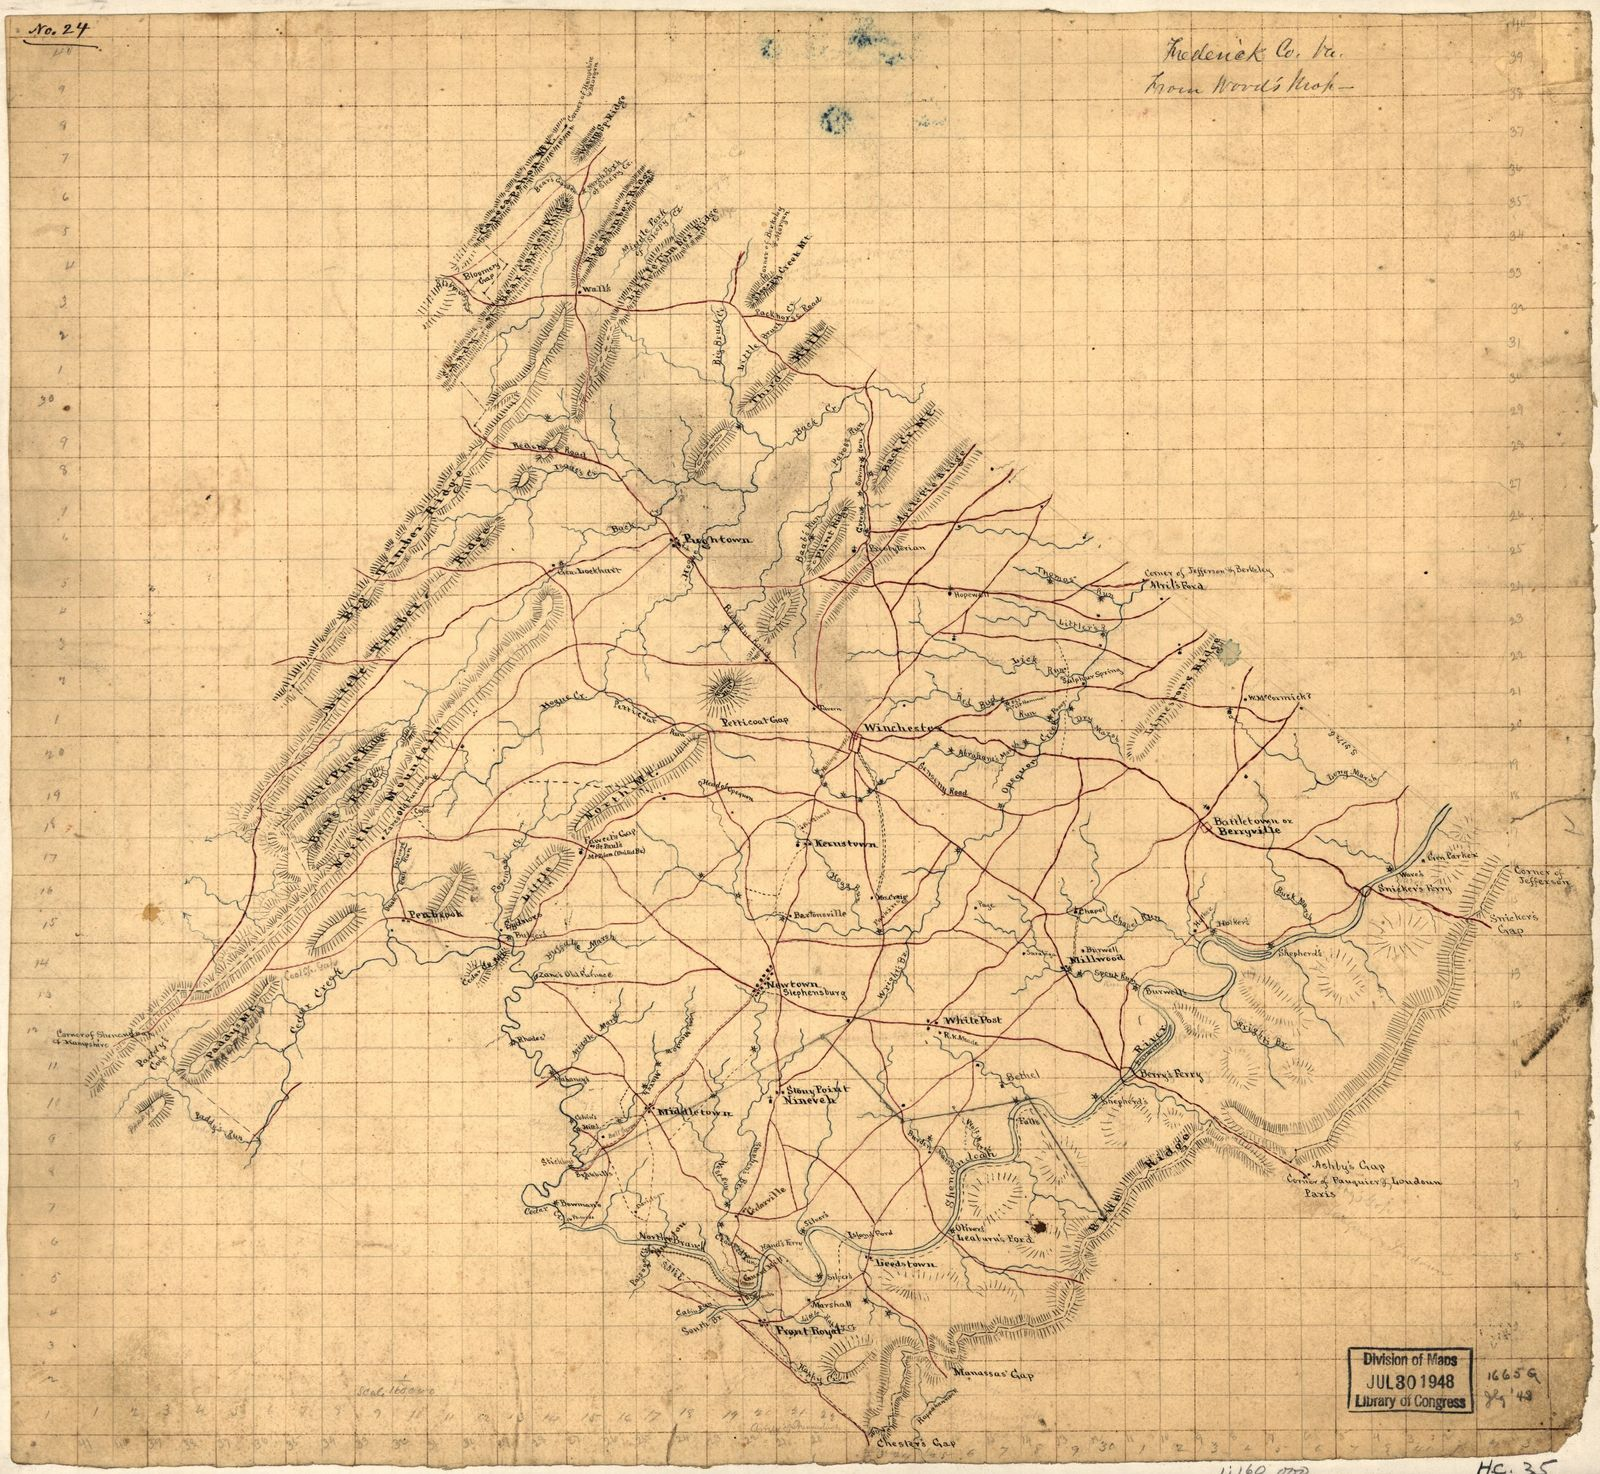 Frederick Co. Va., from Wood's map.